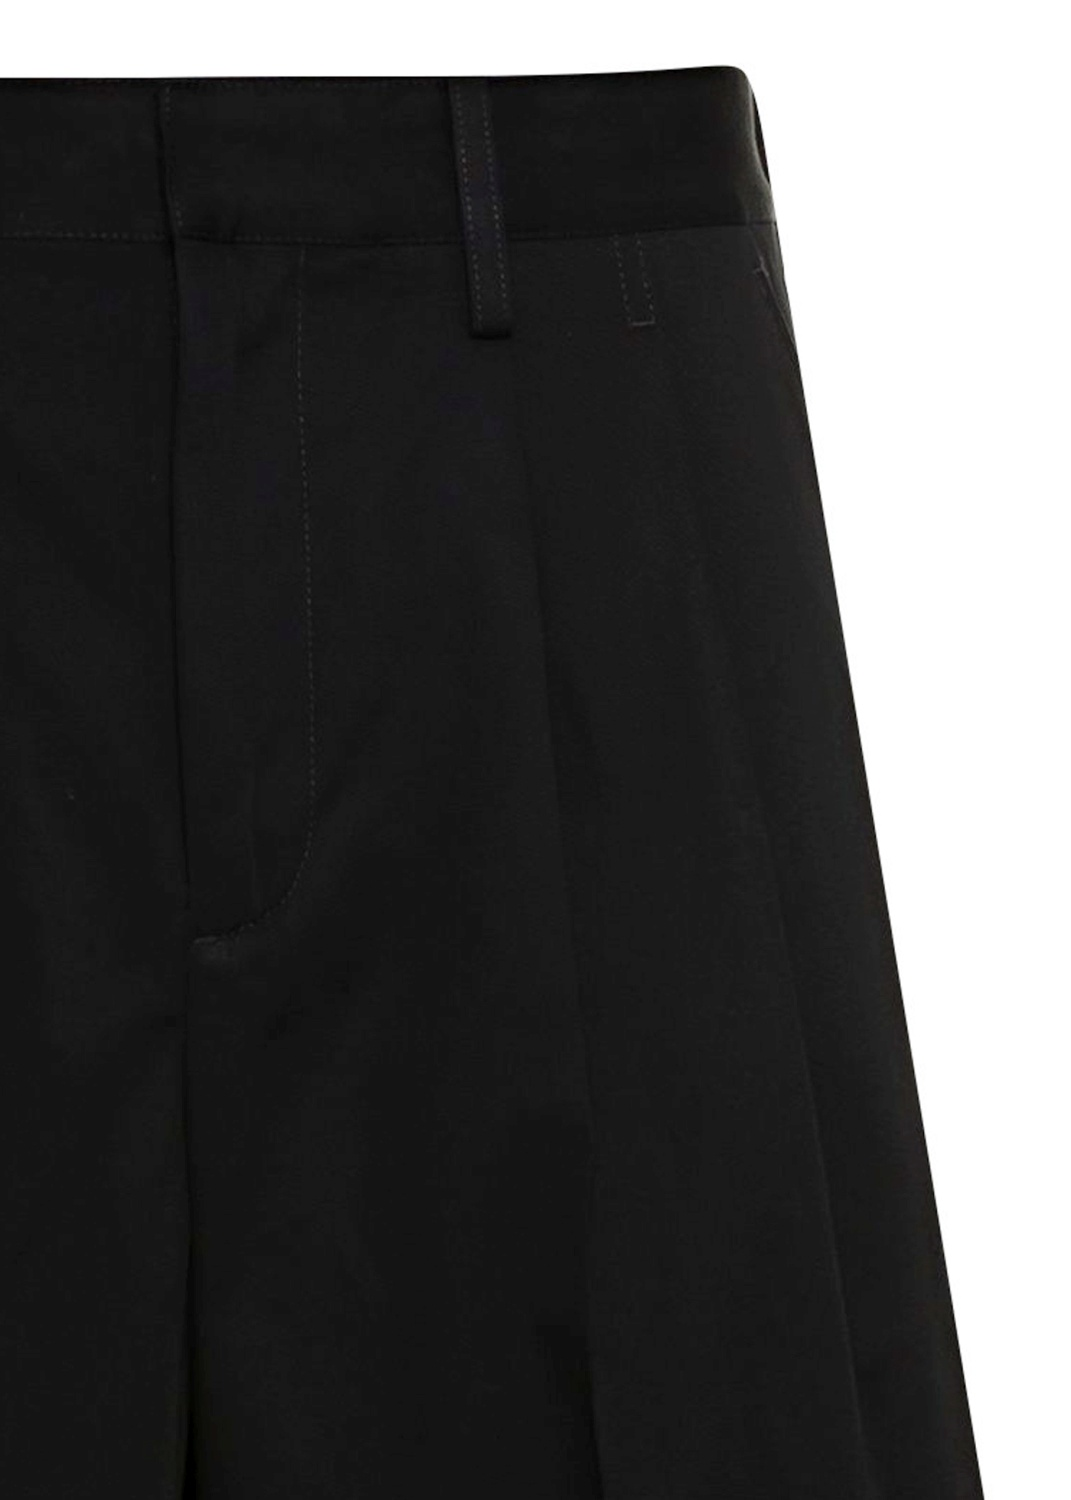 Cropped Trousers image number 2